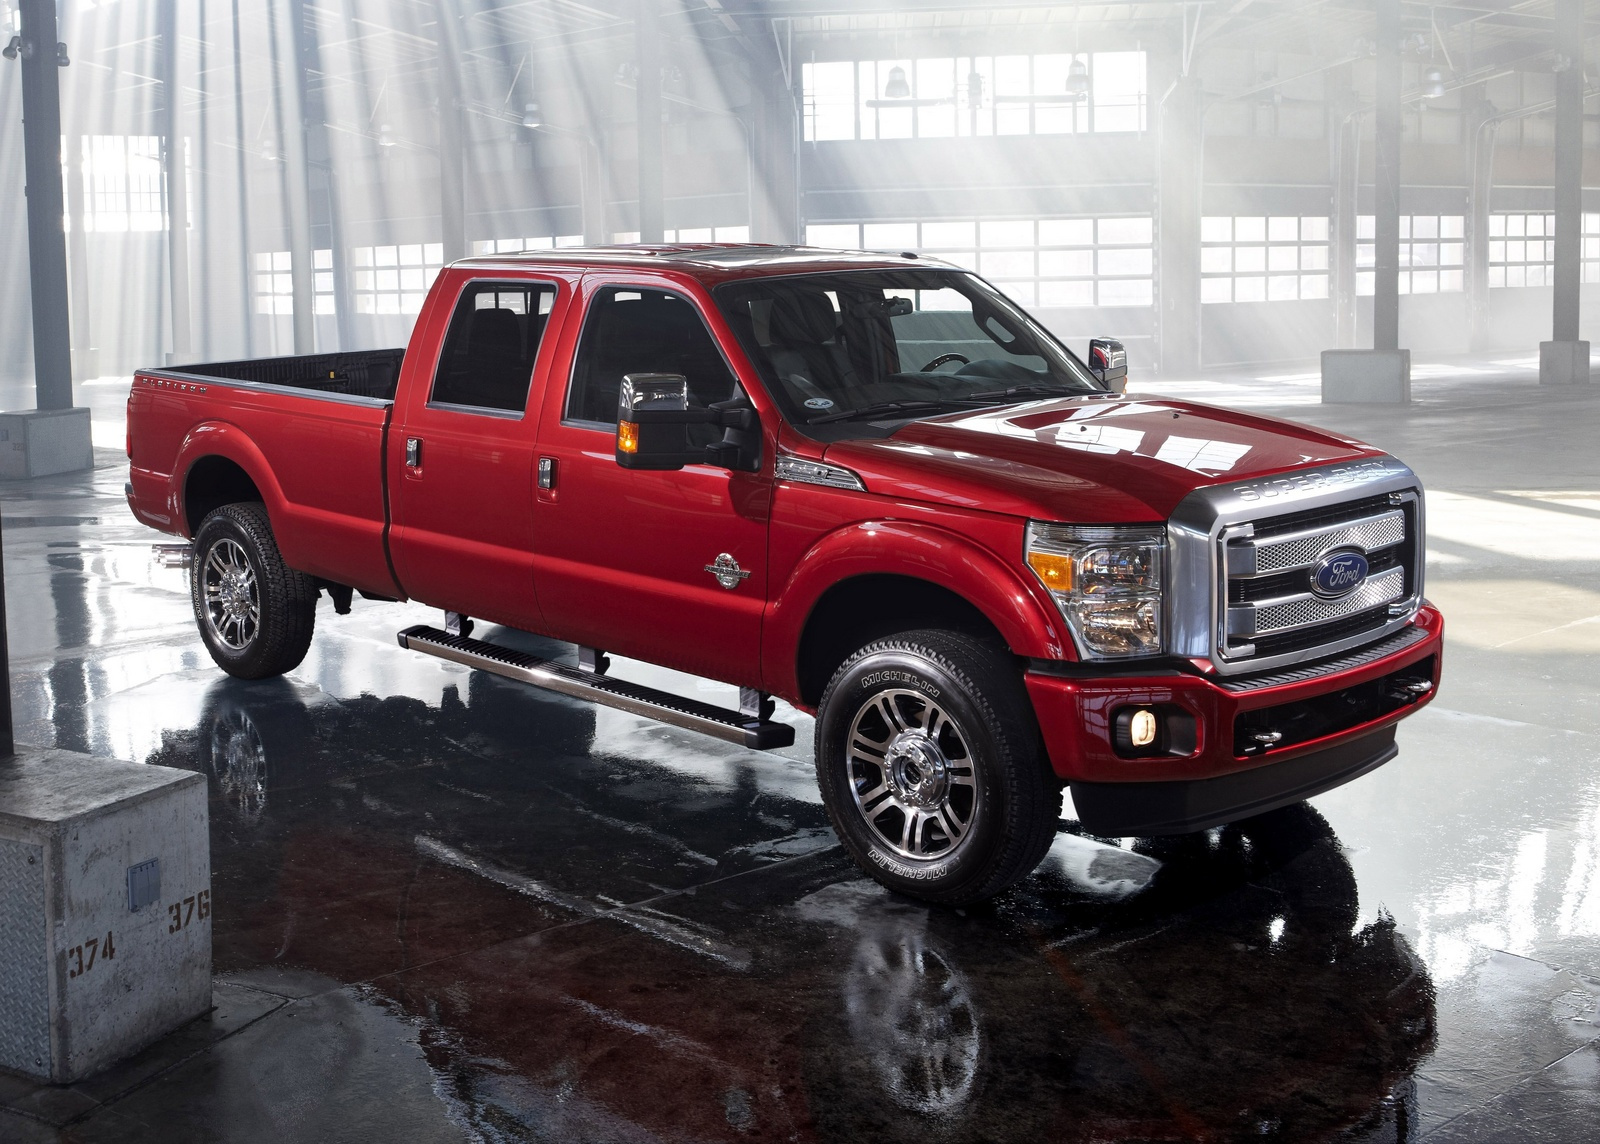 2014 ford f 350 super duty overview cargurus. Black Bedroom Furniture Sets. Home Design Ideas